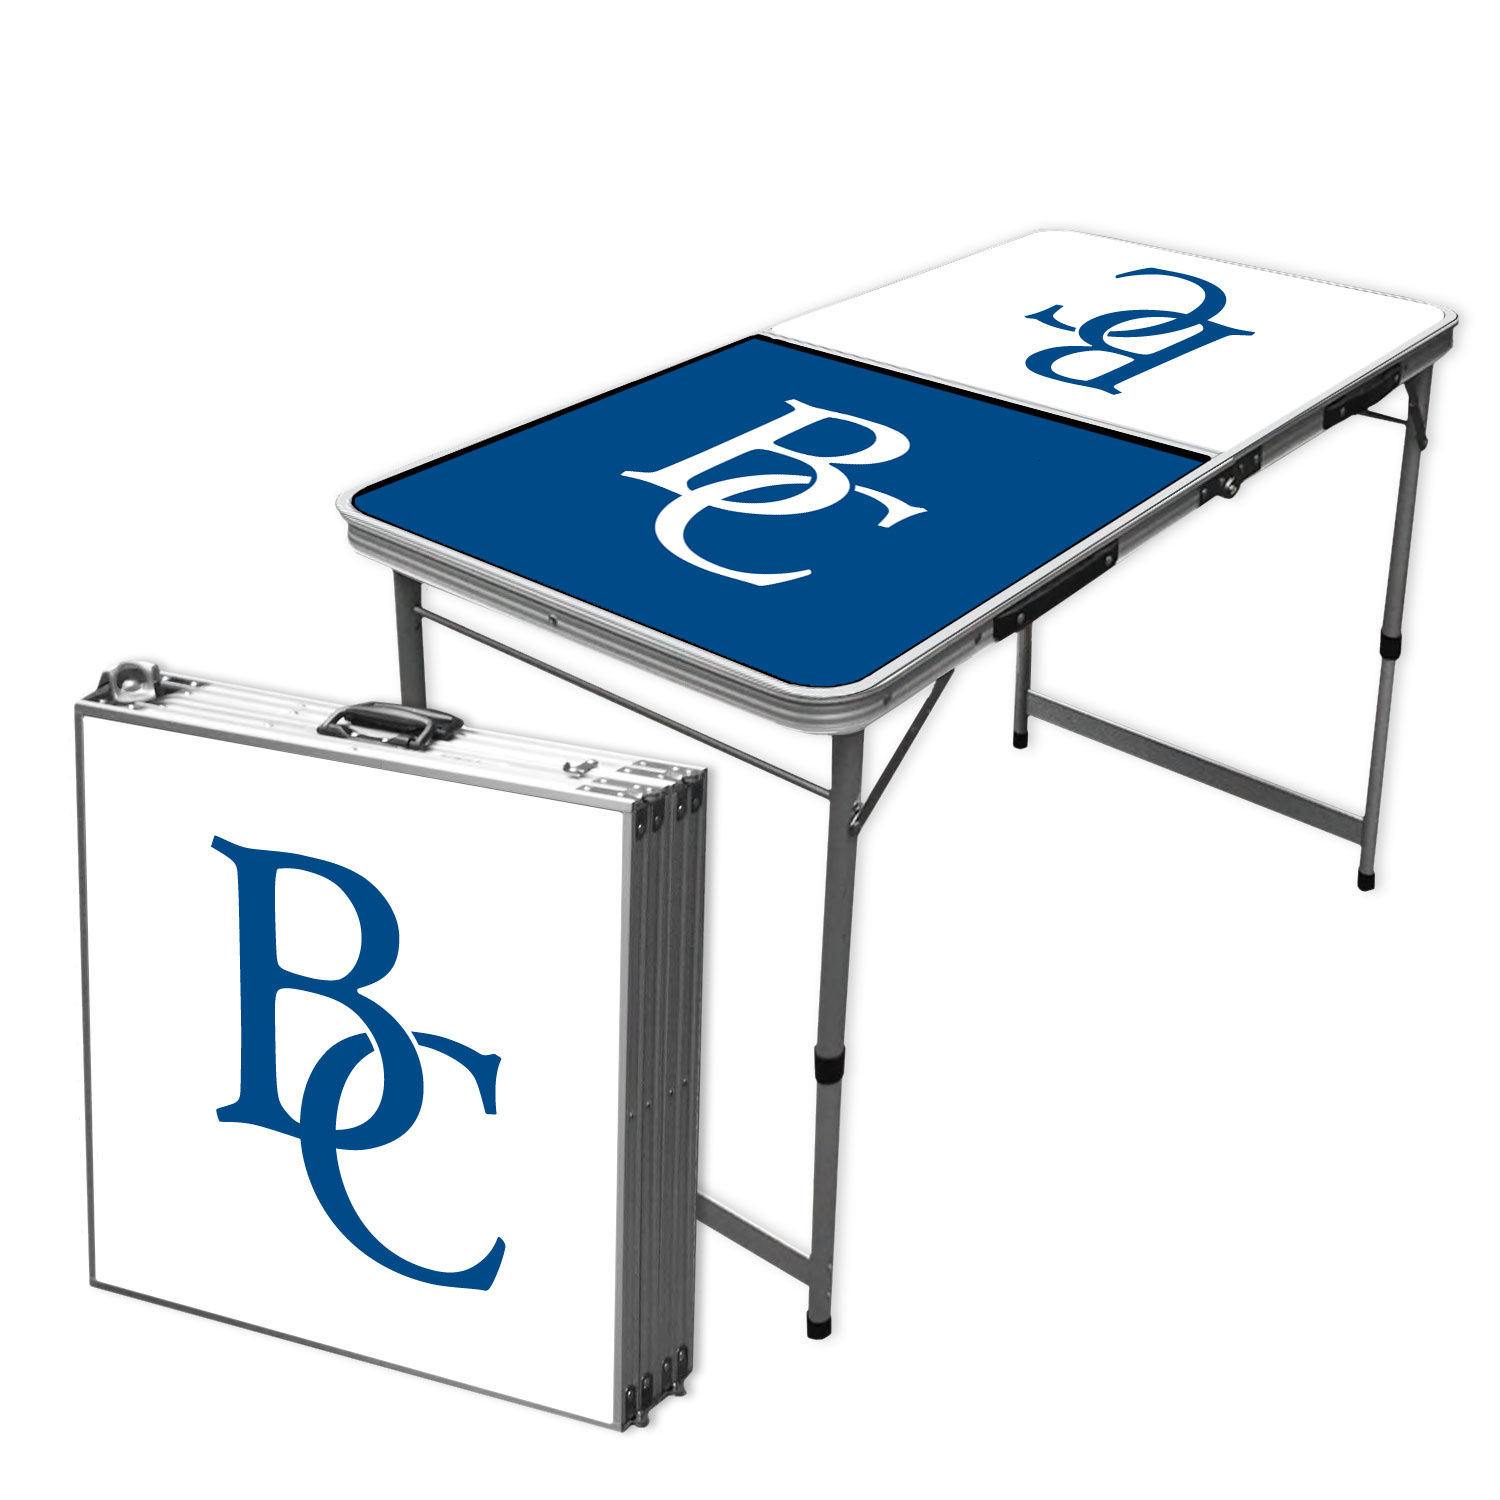 Ping Pong Table with BC logo*-1